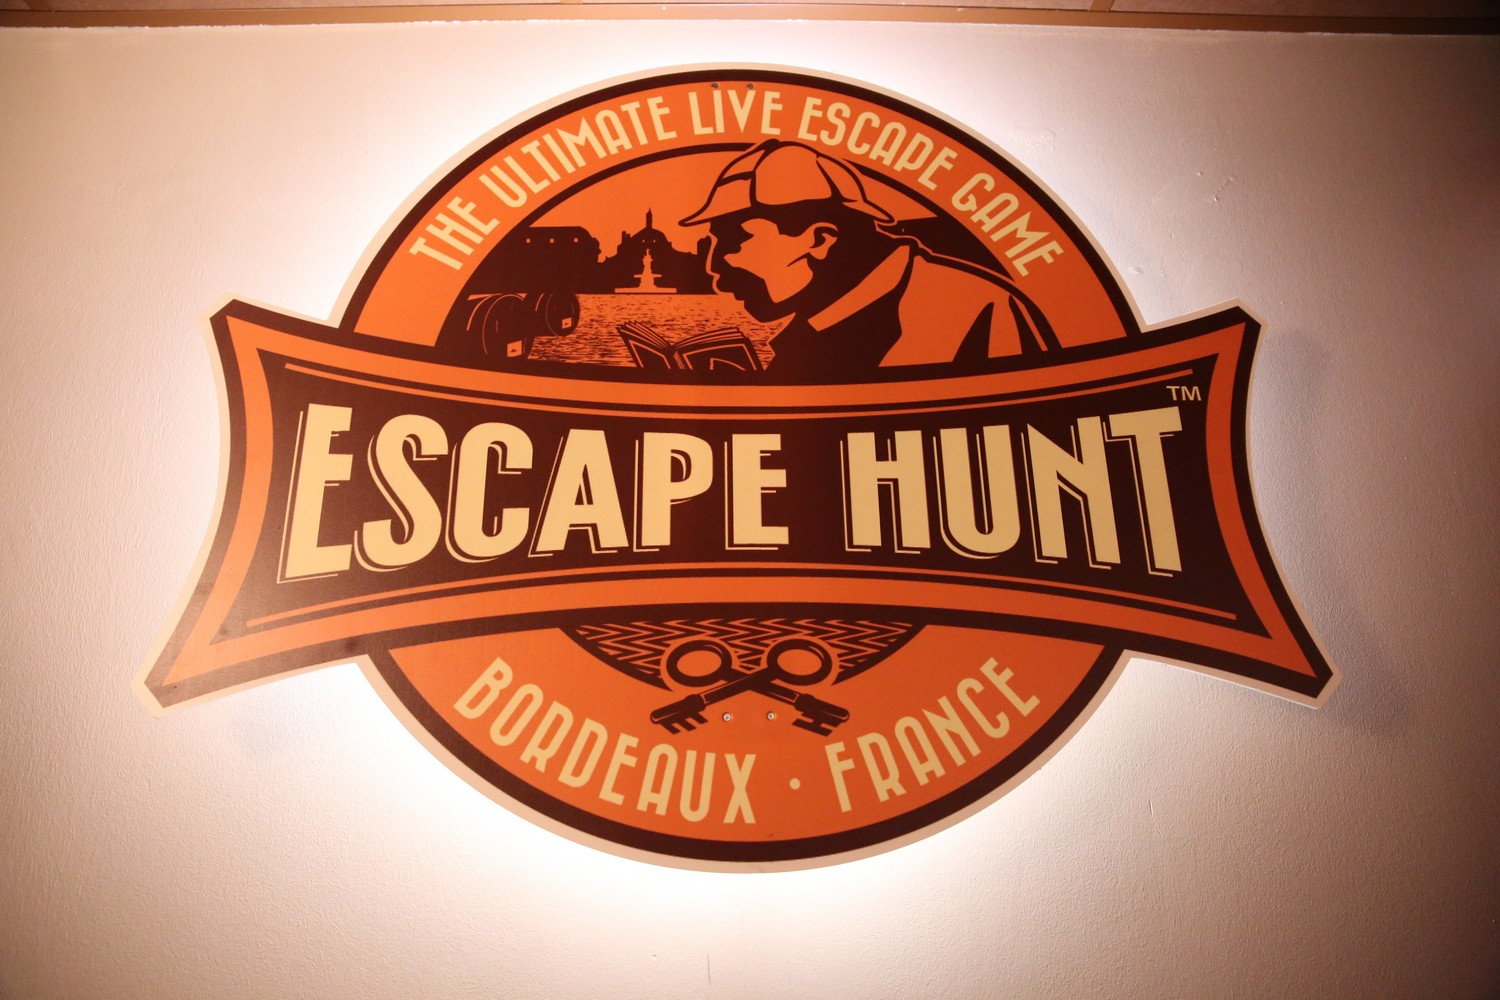 ESCAPE HUNT BORDEAUX ON TESTE L'ESCAPE GAME ! BLOG BONNES ADRESSES COUPLE BLOGUEUR LIFESTYLE 01